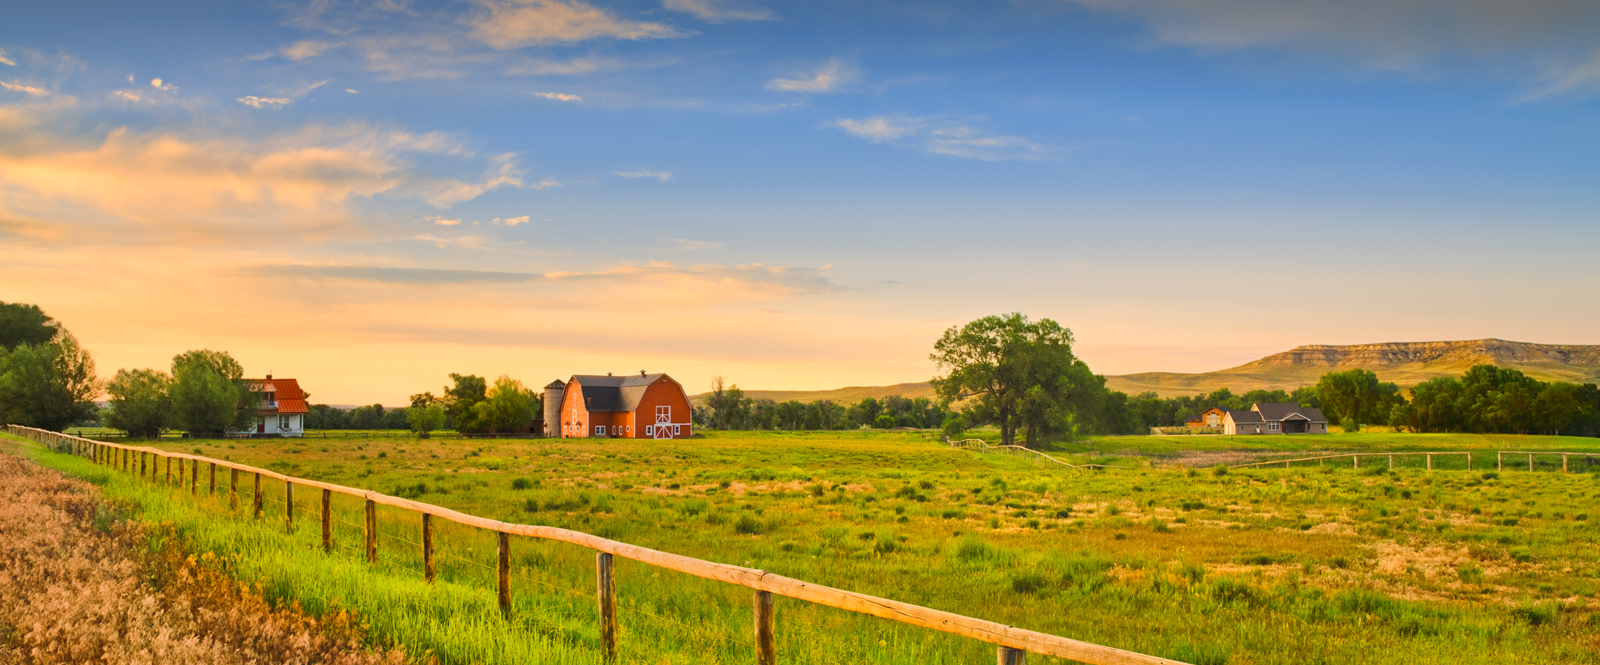 The Beauty of Farm - Harper Realty, Inc.